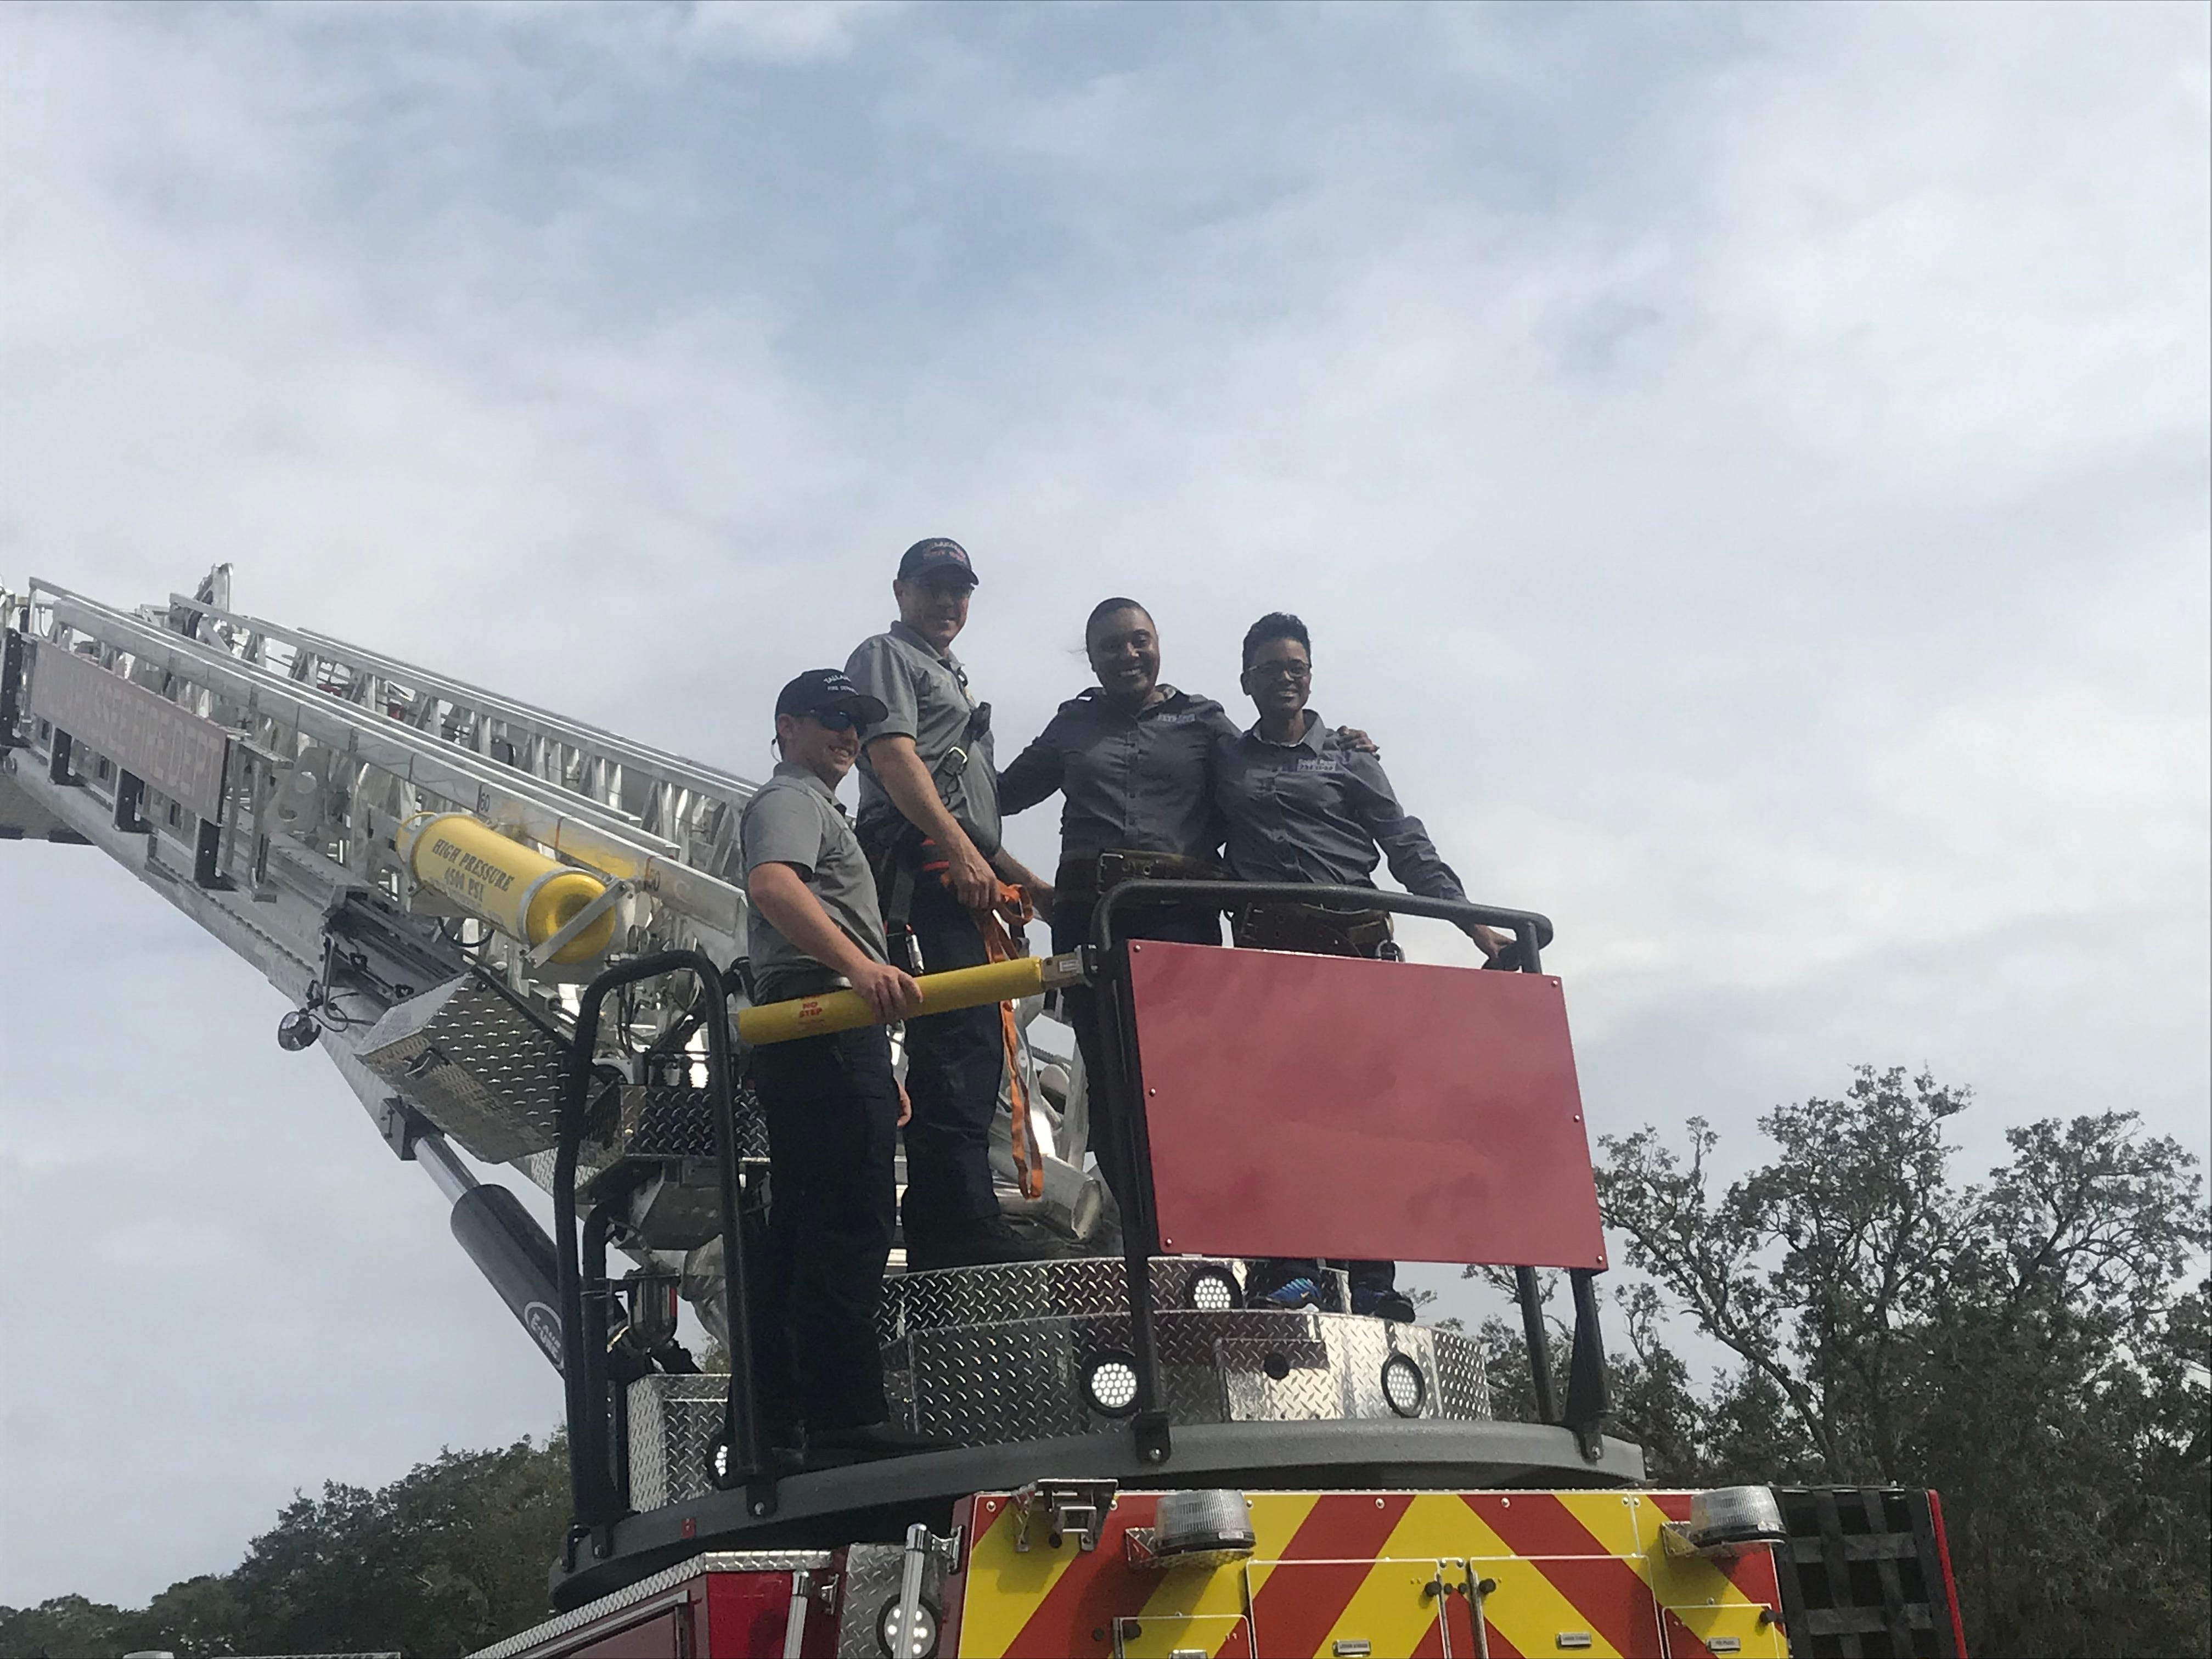 (From left to right) Engineer Jeff Brady, firefighter Tom Burns and Sabal Palm Elementary Principal Anicia Robinson and Jameeka Wallace stand on top of a TFD ladder truck that extends eight-floors high.